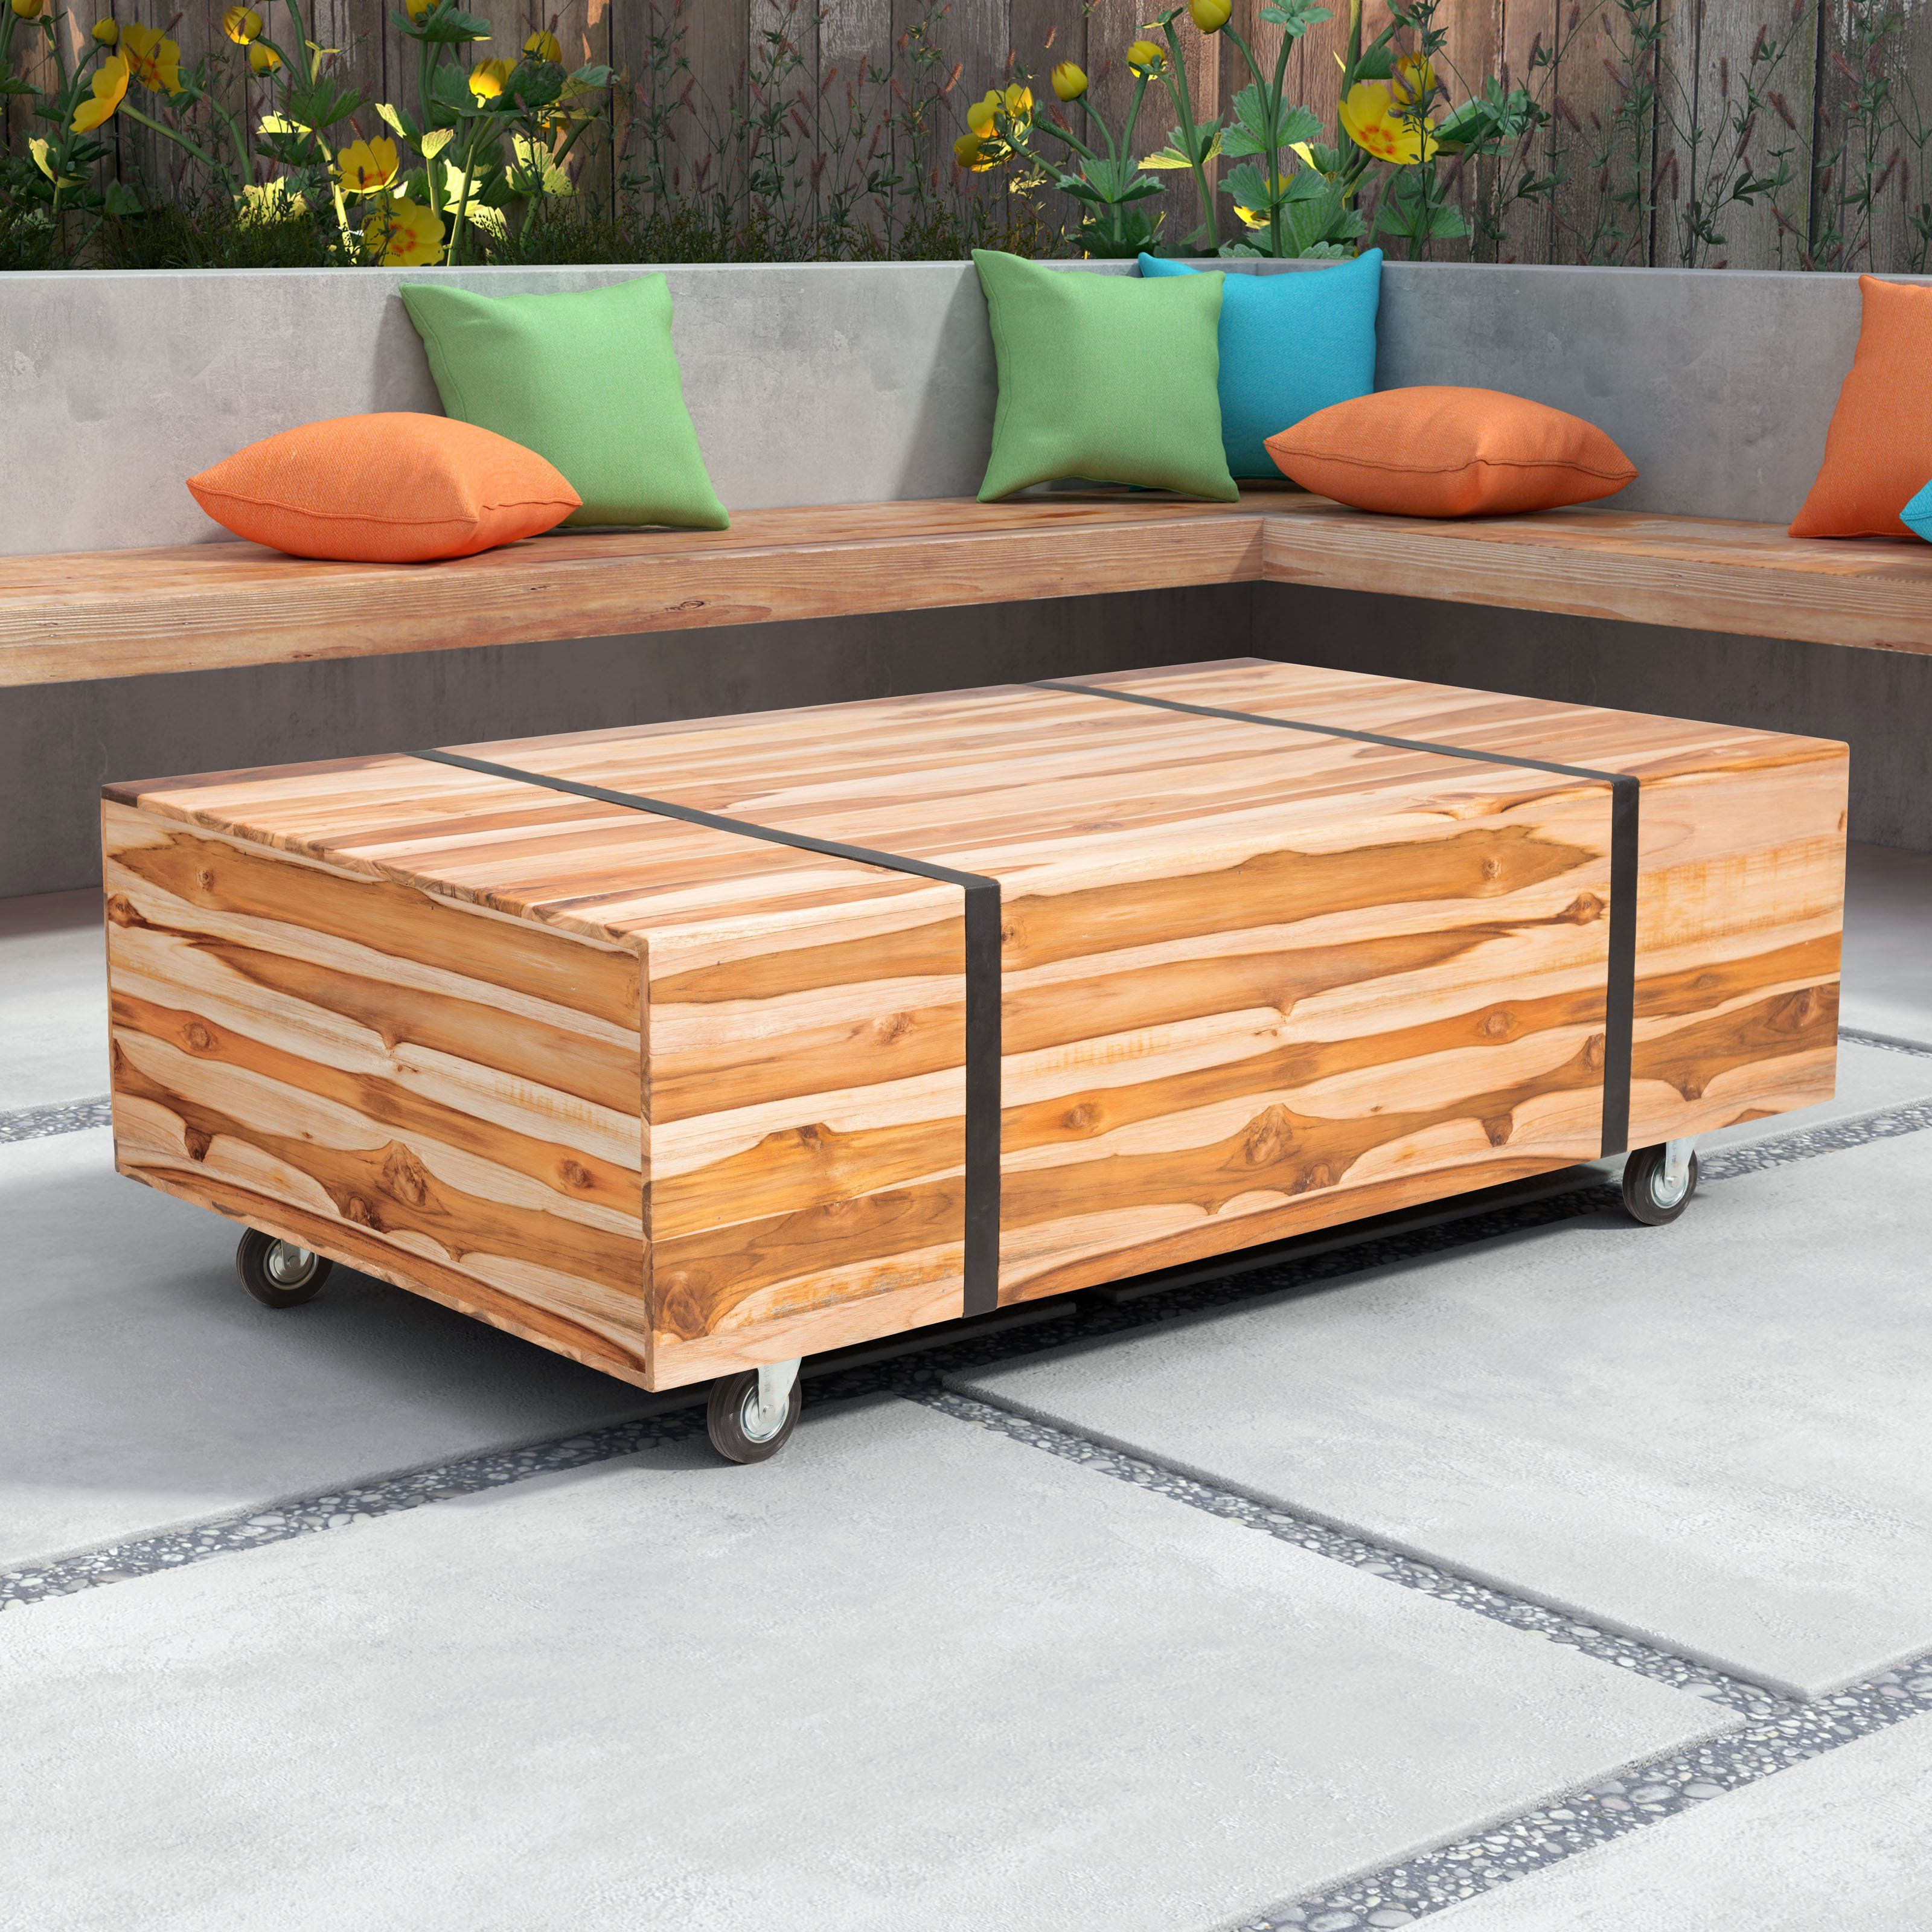 Remarkable Outdoor Zuo Vive River Coffee Table 703799 Products Customarchery Wood Chair Design Ideas Customarcherynet